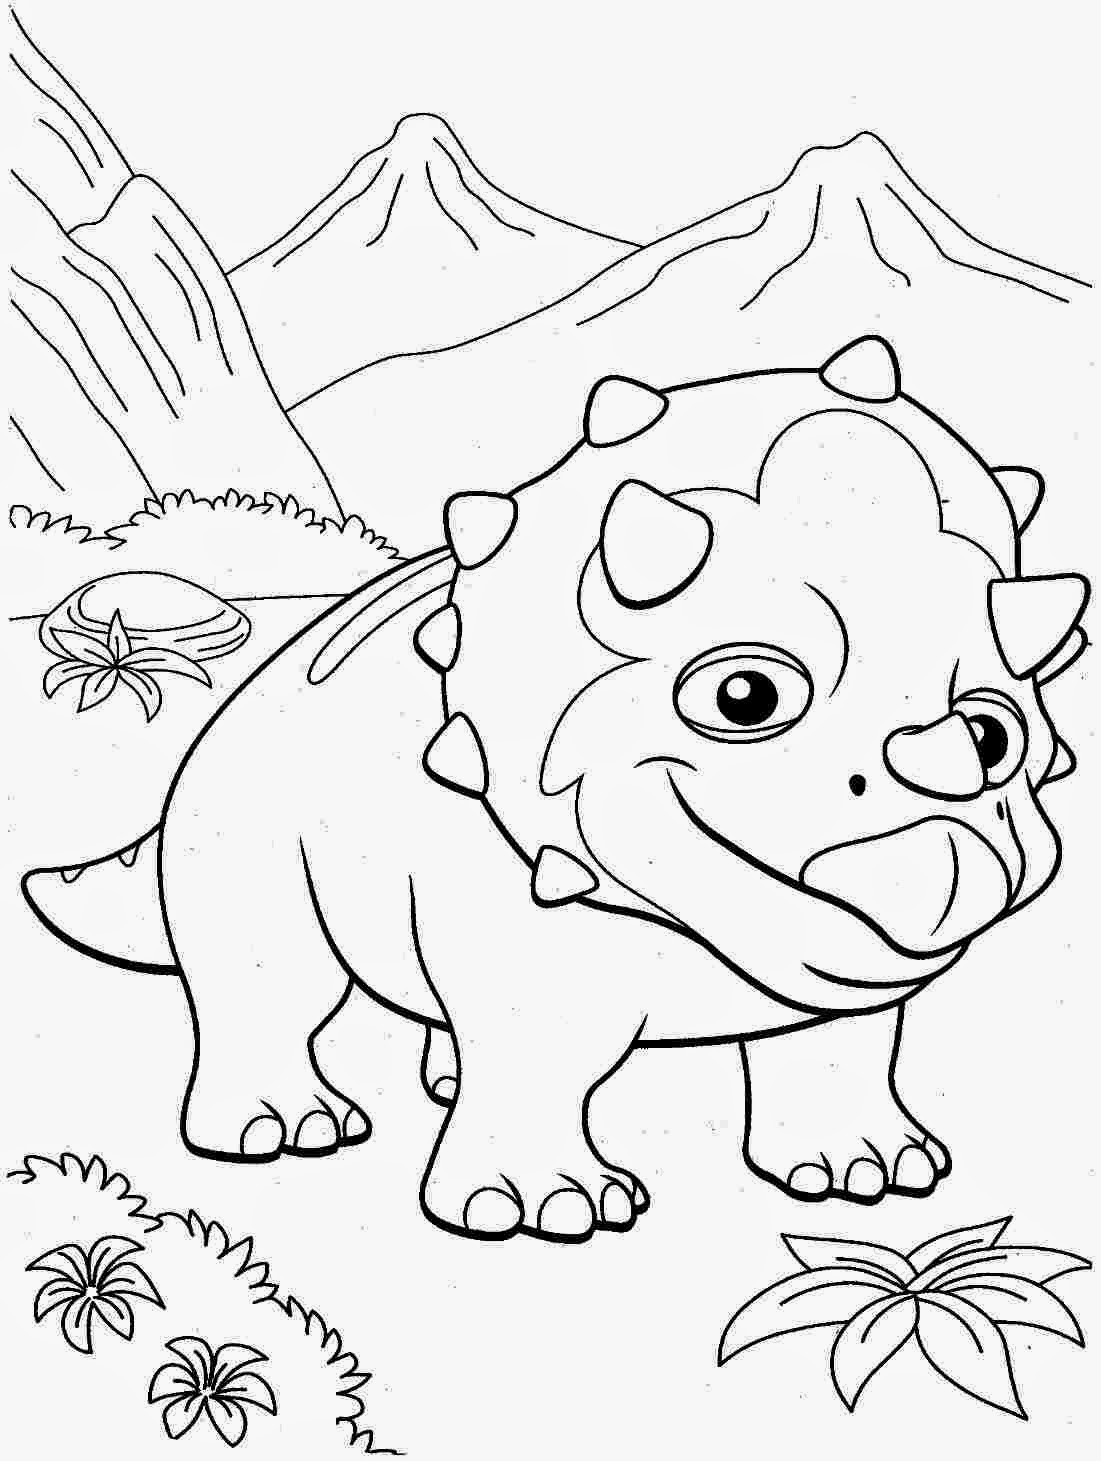 dinosaur coloring pages printable free coloring pages dinosaur free printable coloring pages printable free pages coloring dinosaur